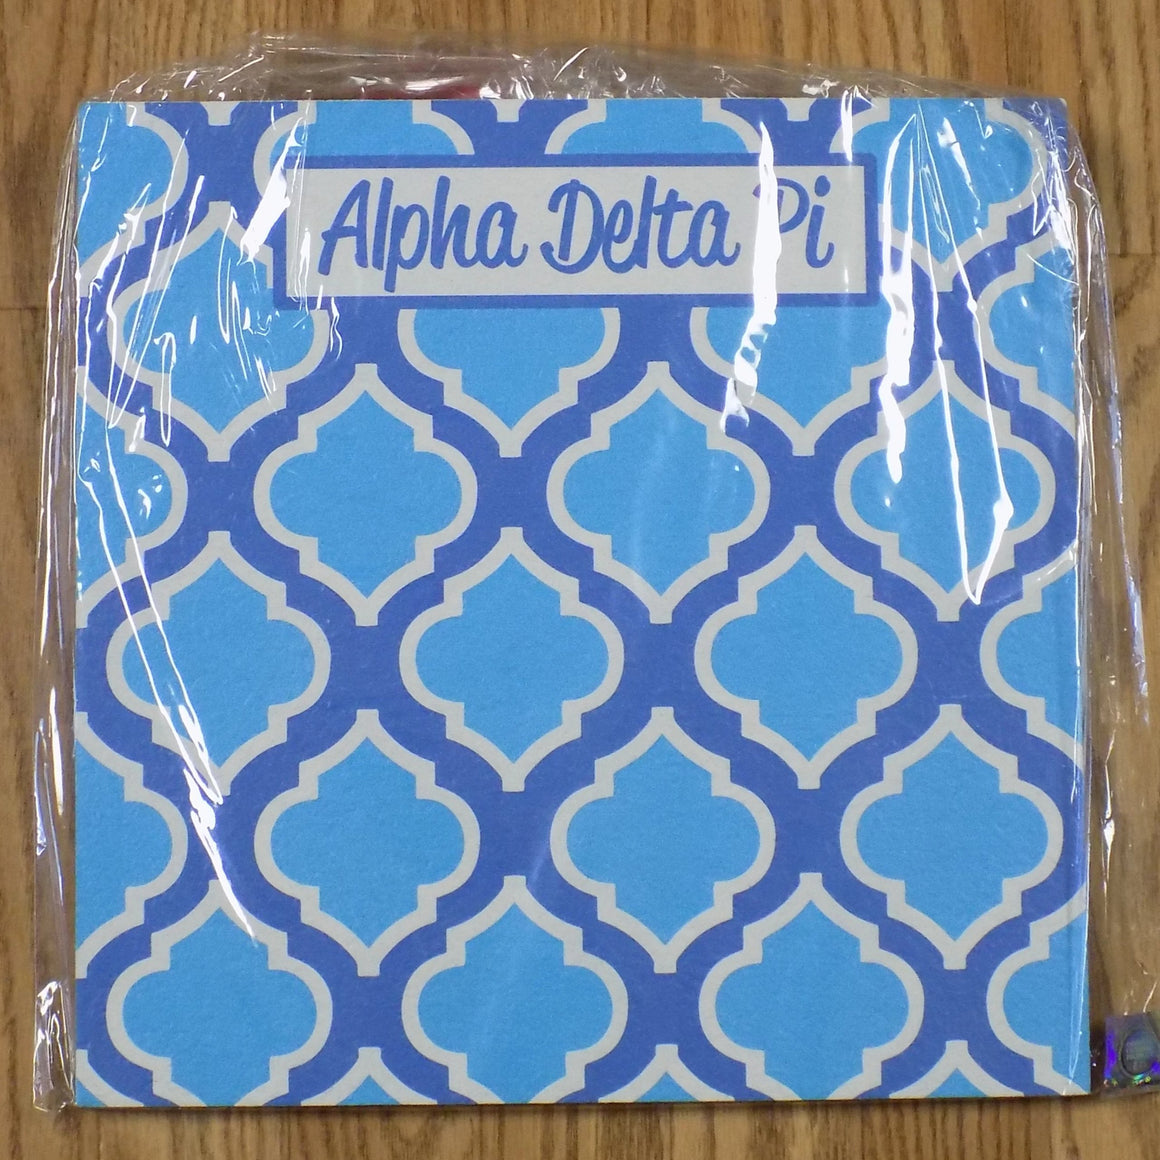 Cork Board - Alpha Delta Pi